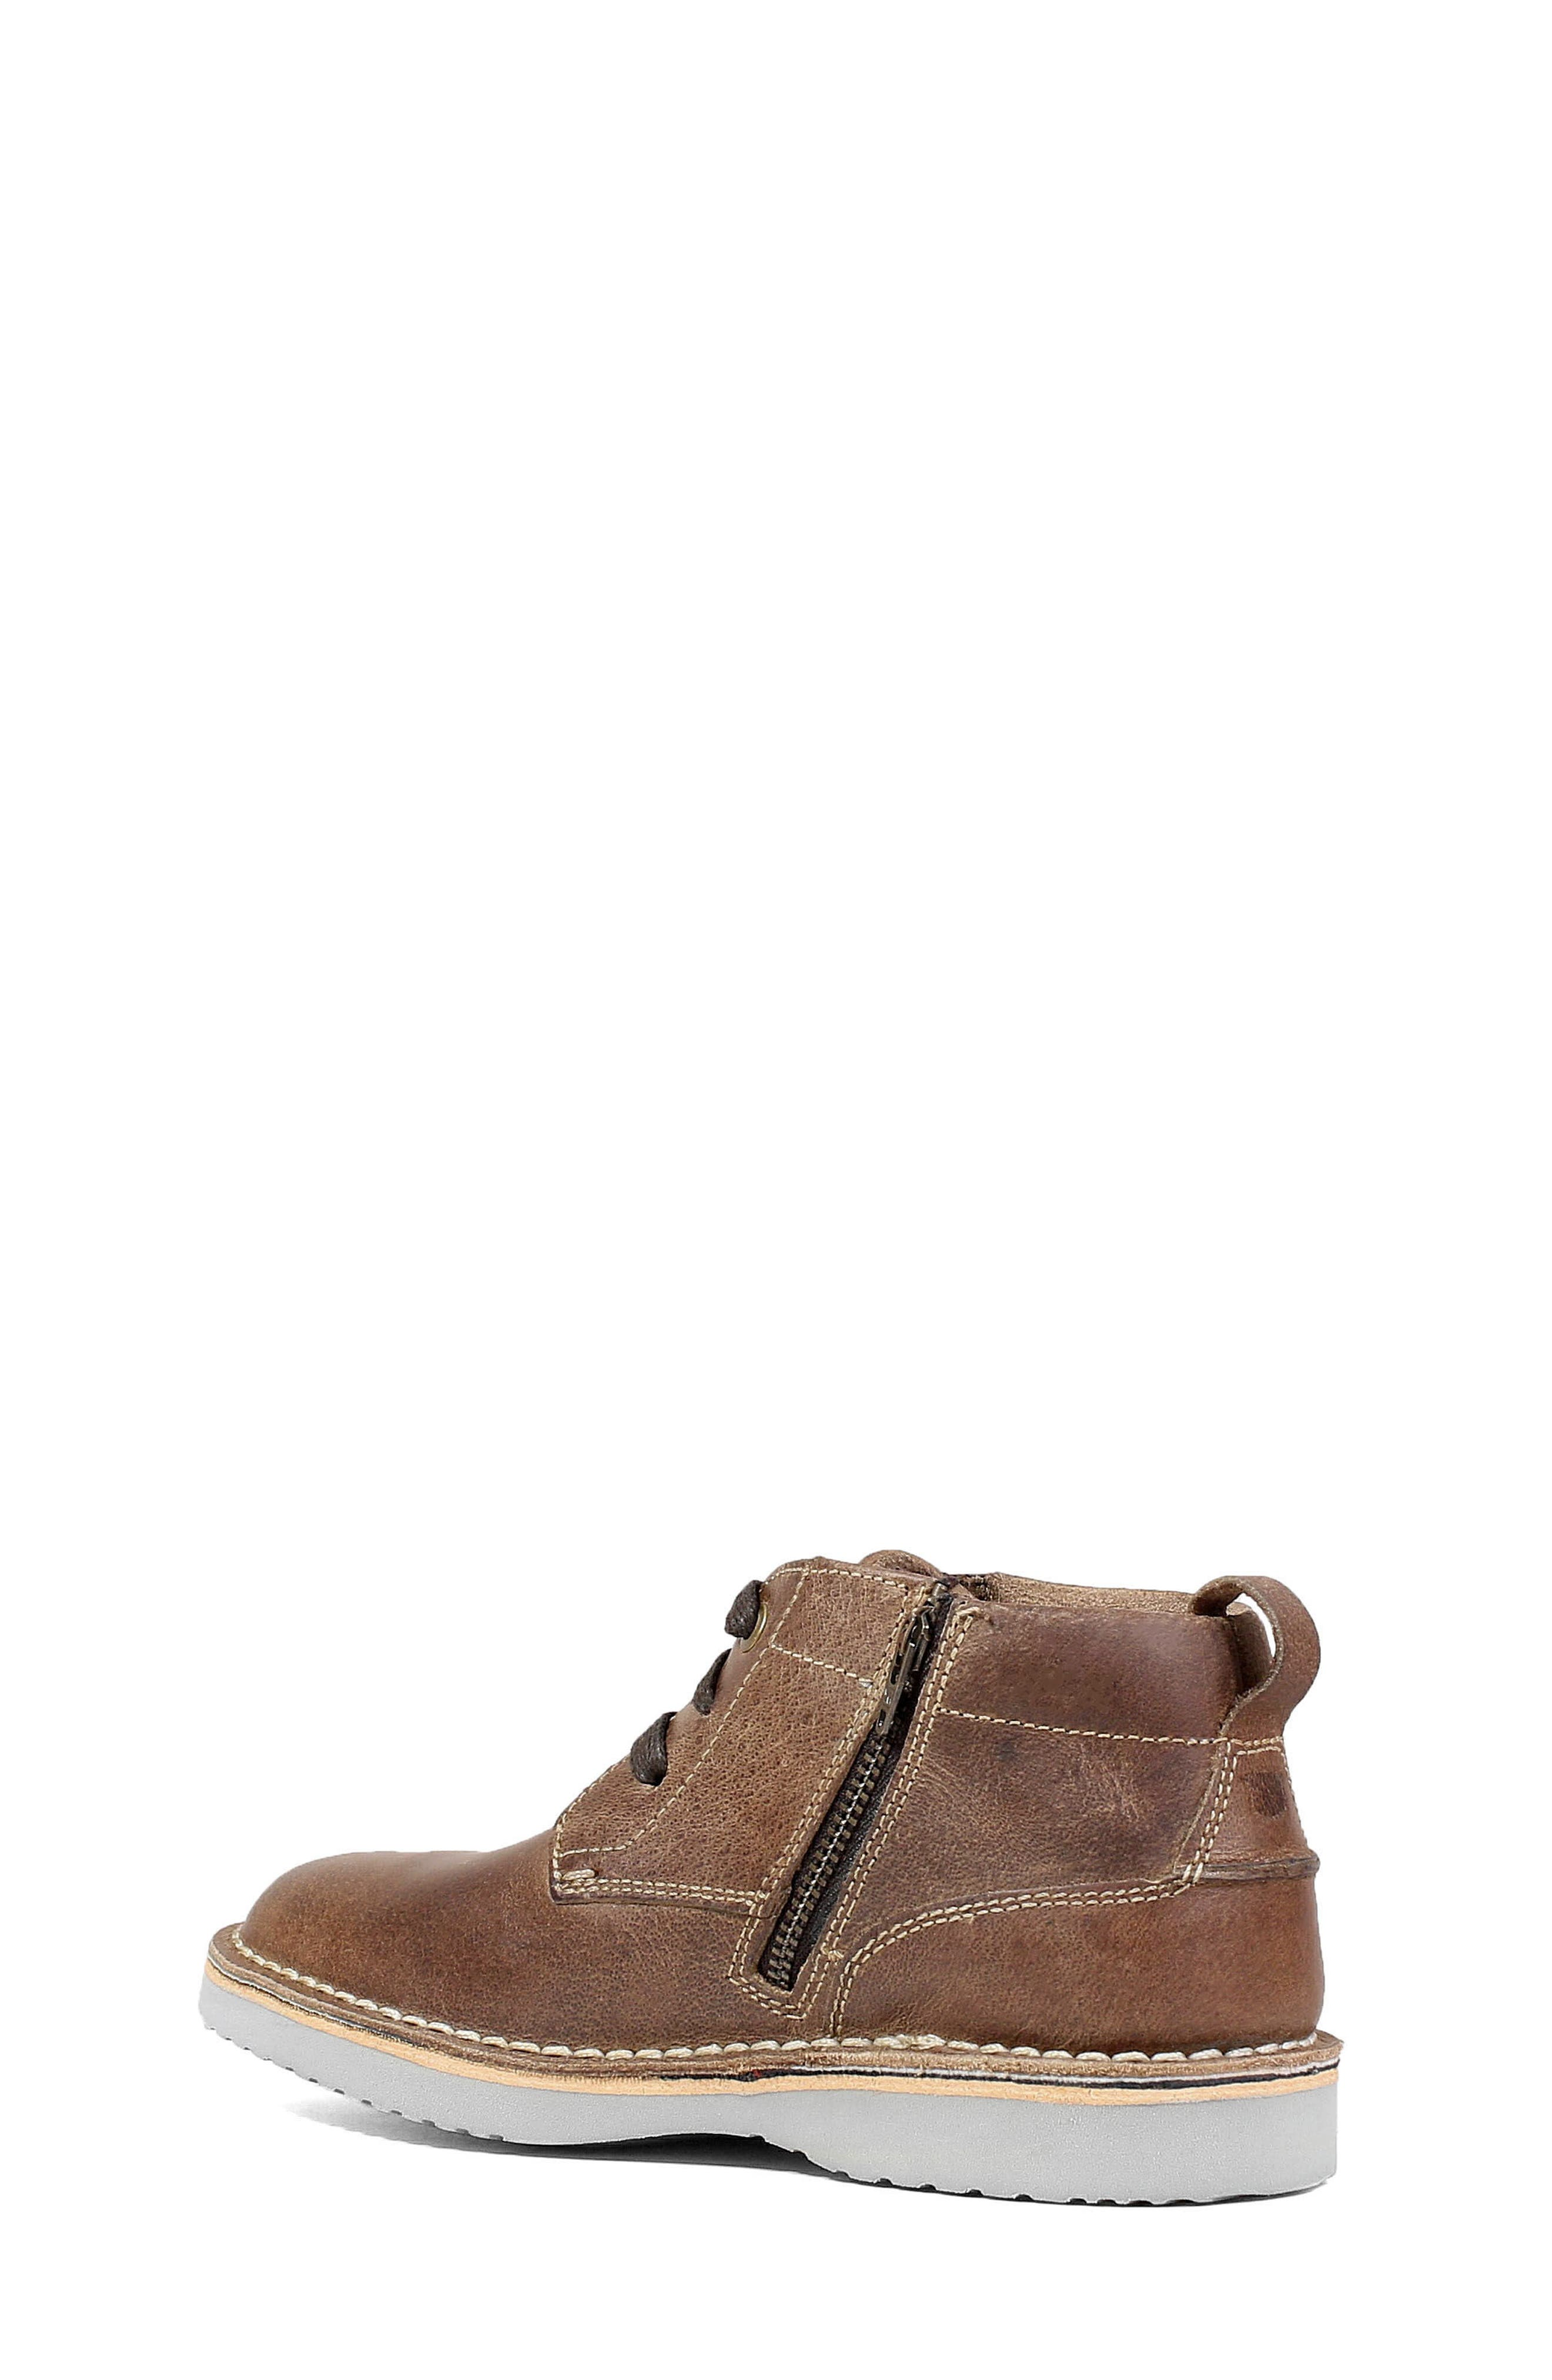 Chukka Boot,                             Alternate thumbnail 2, color,                             BROWN CRAZY HORSE LEATHER